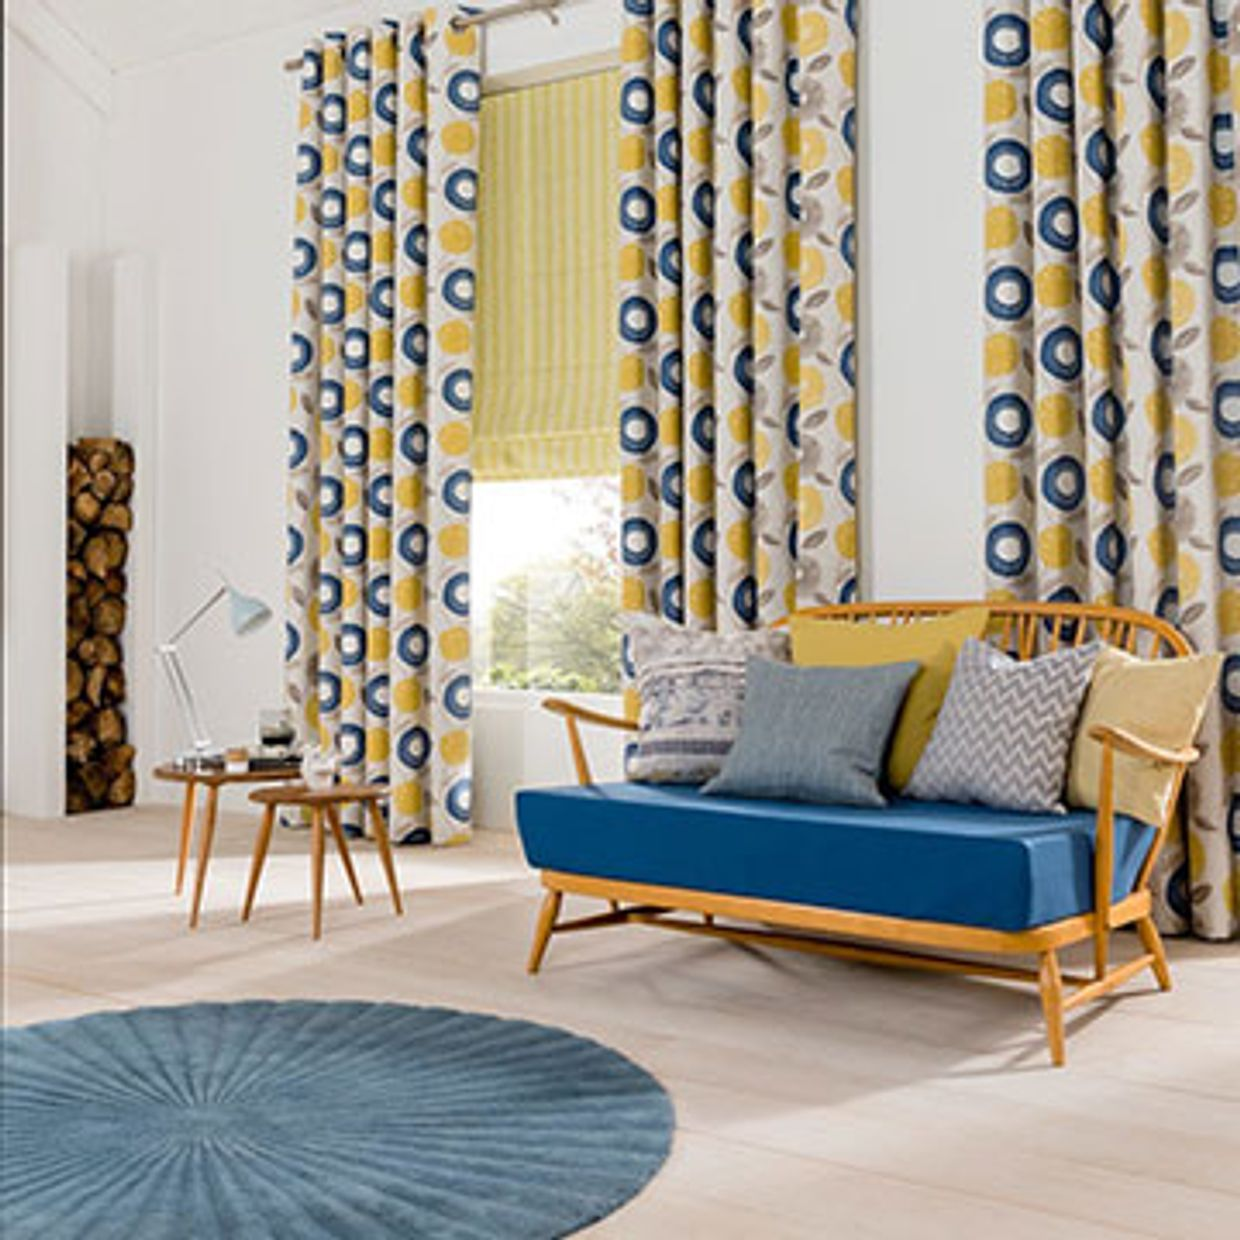 Yellow and blue patterned made to measure curtains combined with a yellow roman blind in the dining room - Freyja Mustard curtains and Lotta Citron roman blind